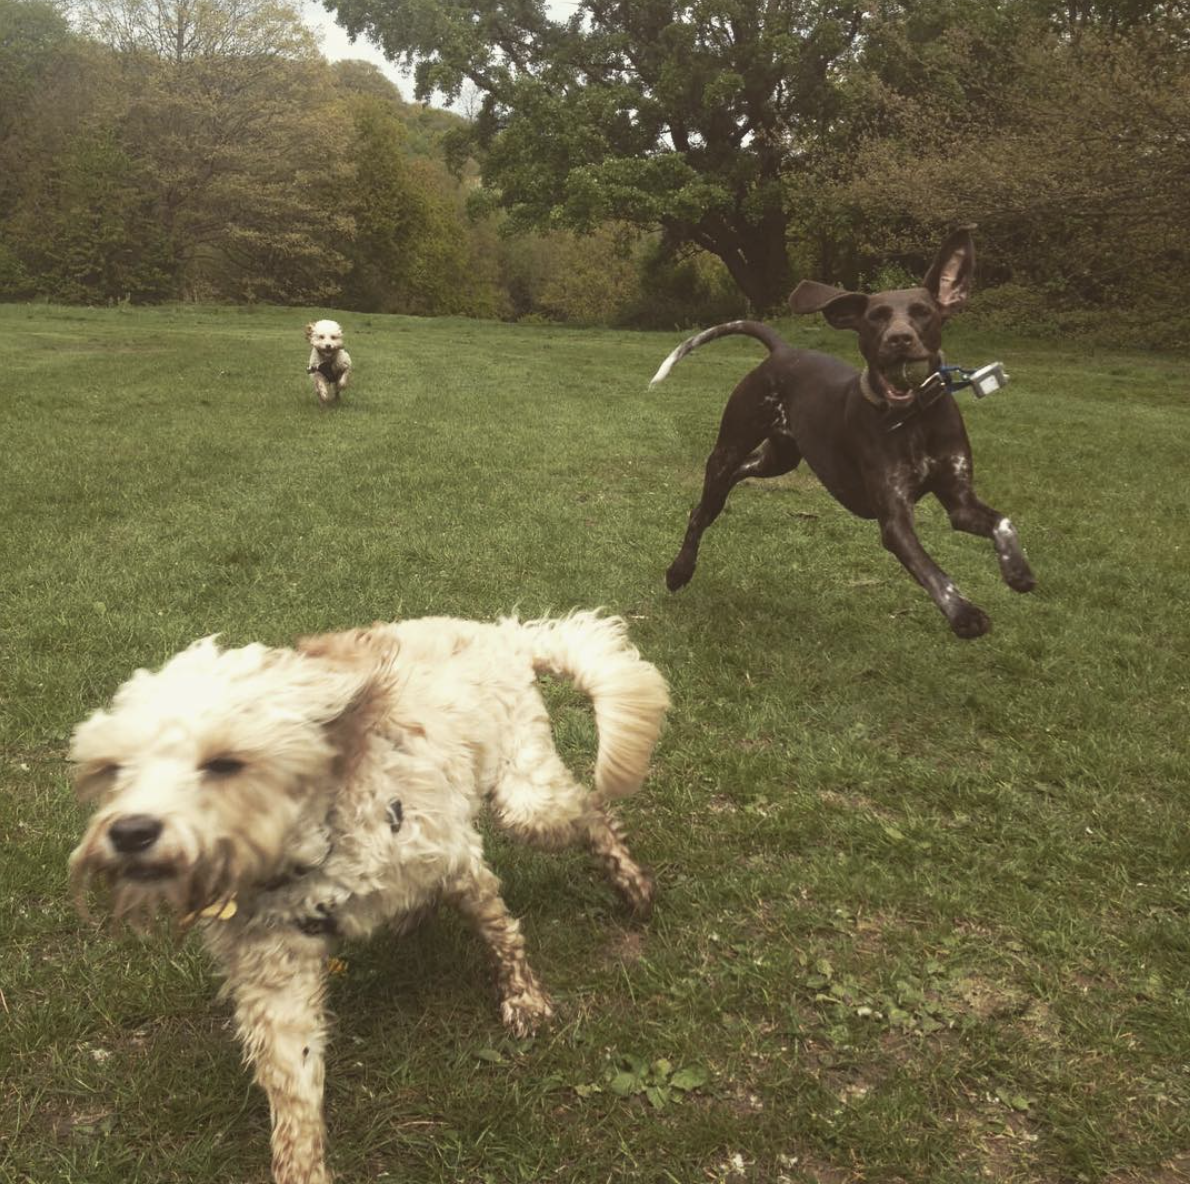 Dogs chasing each other.